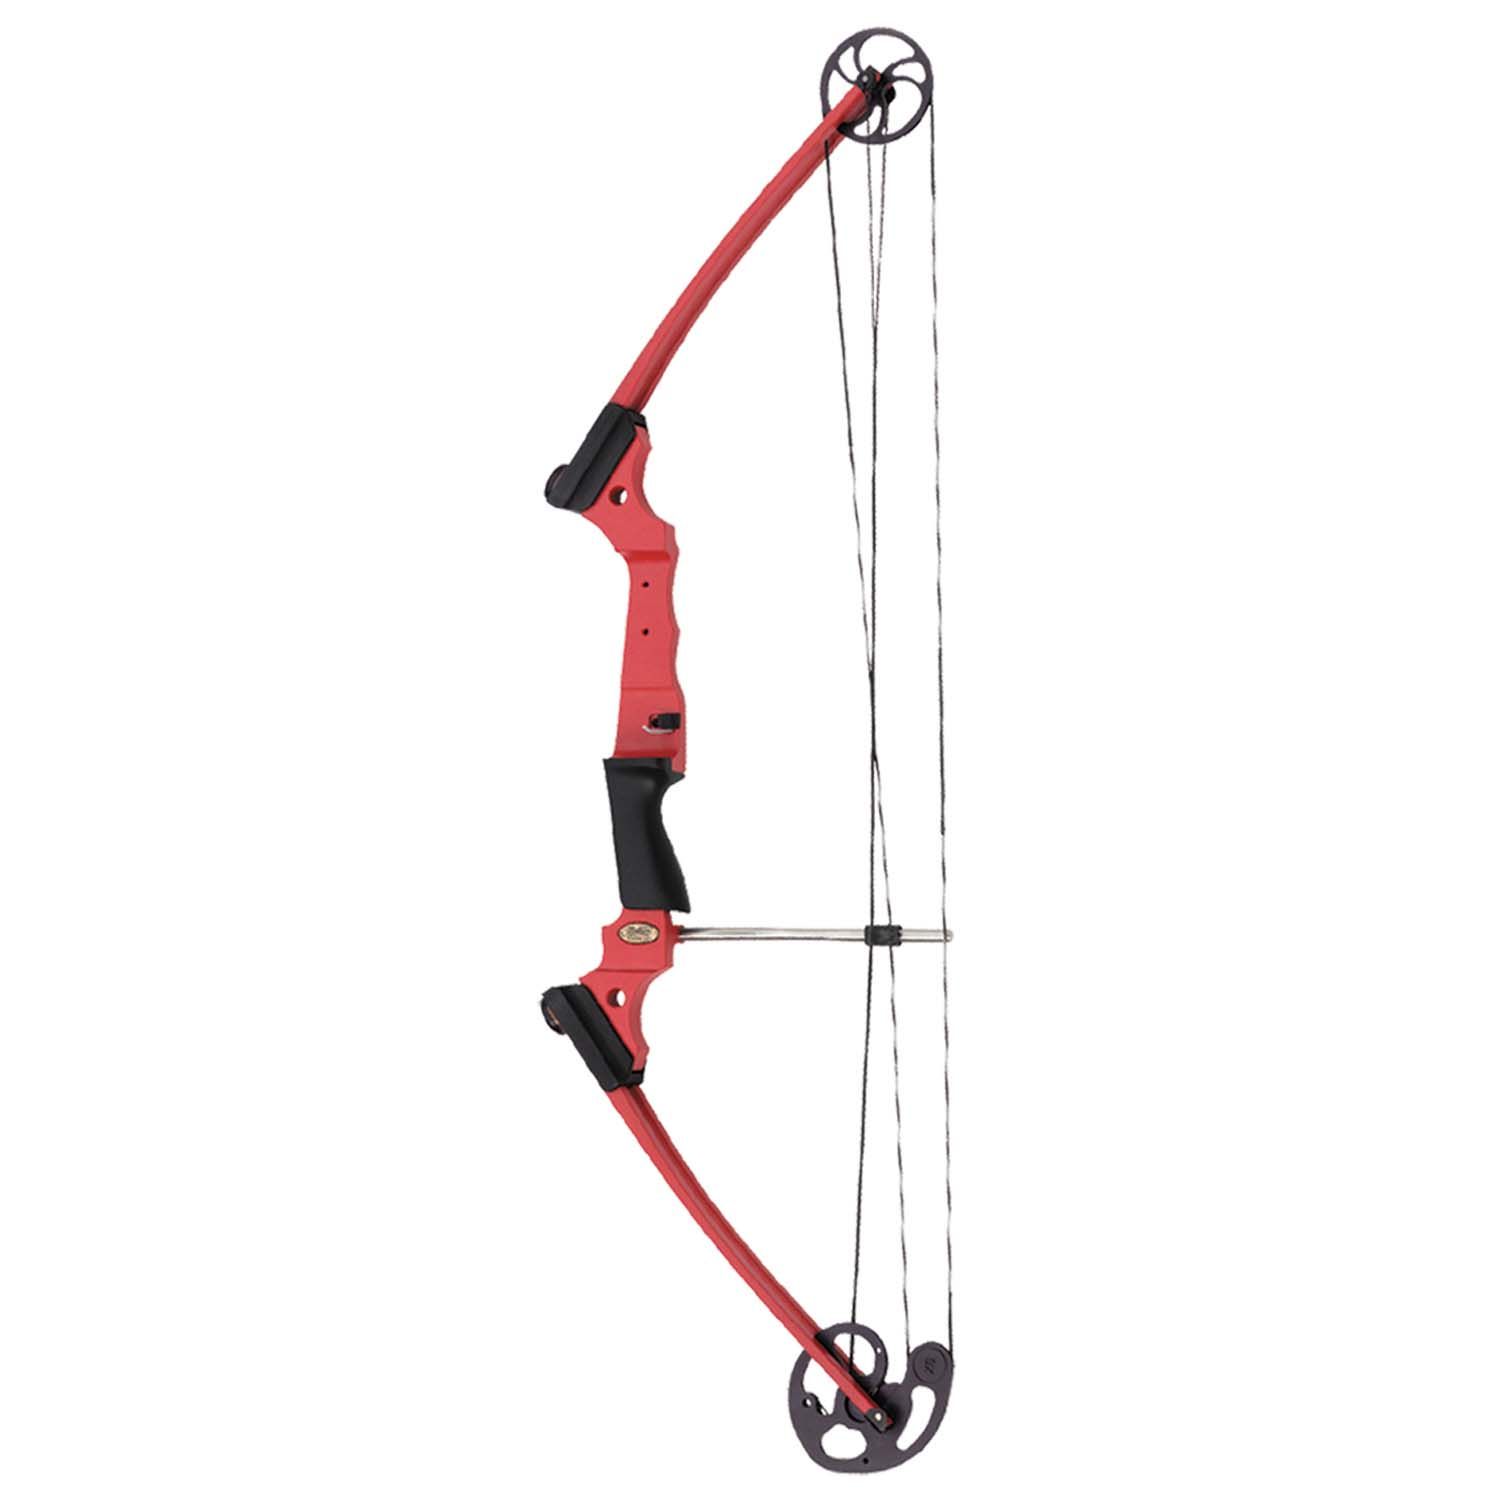 Mathews Genesis Original Bow Rh Cherry Red